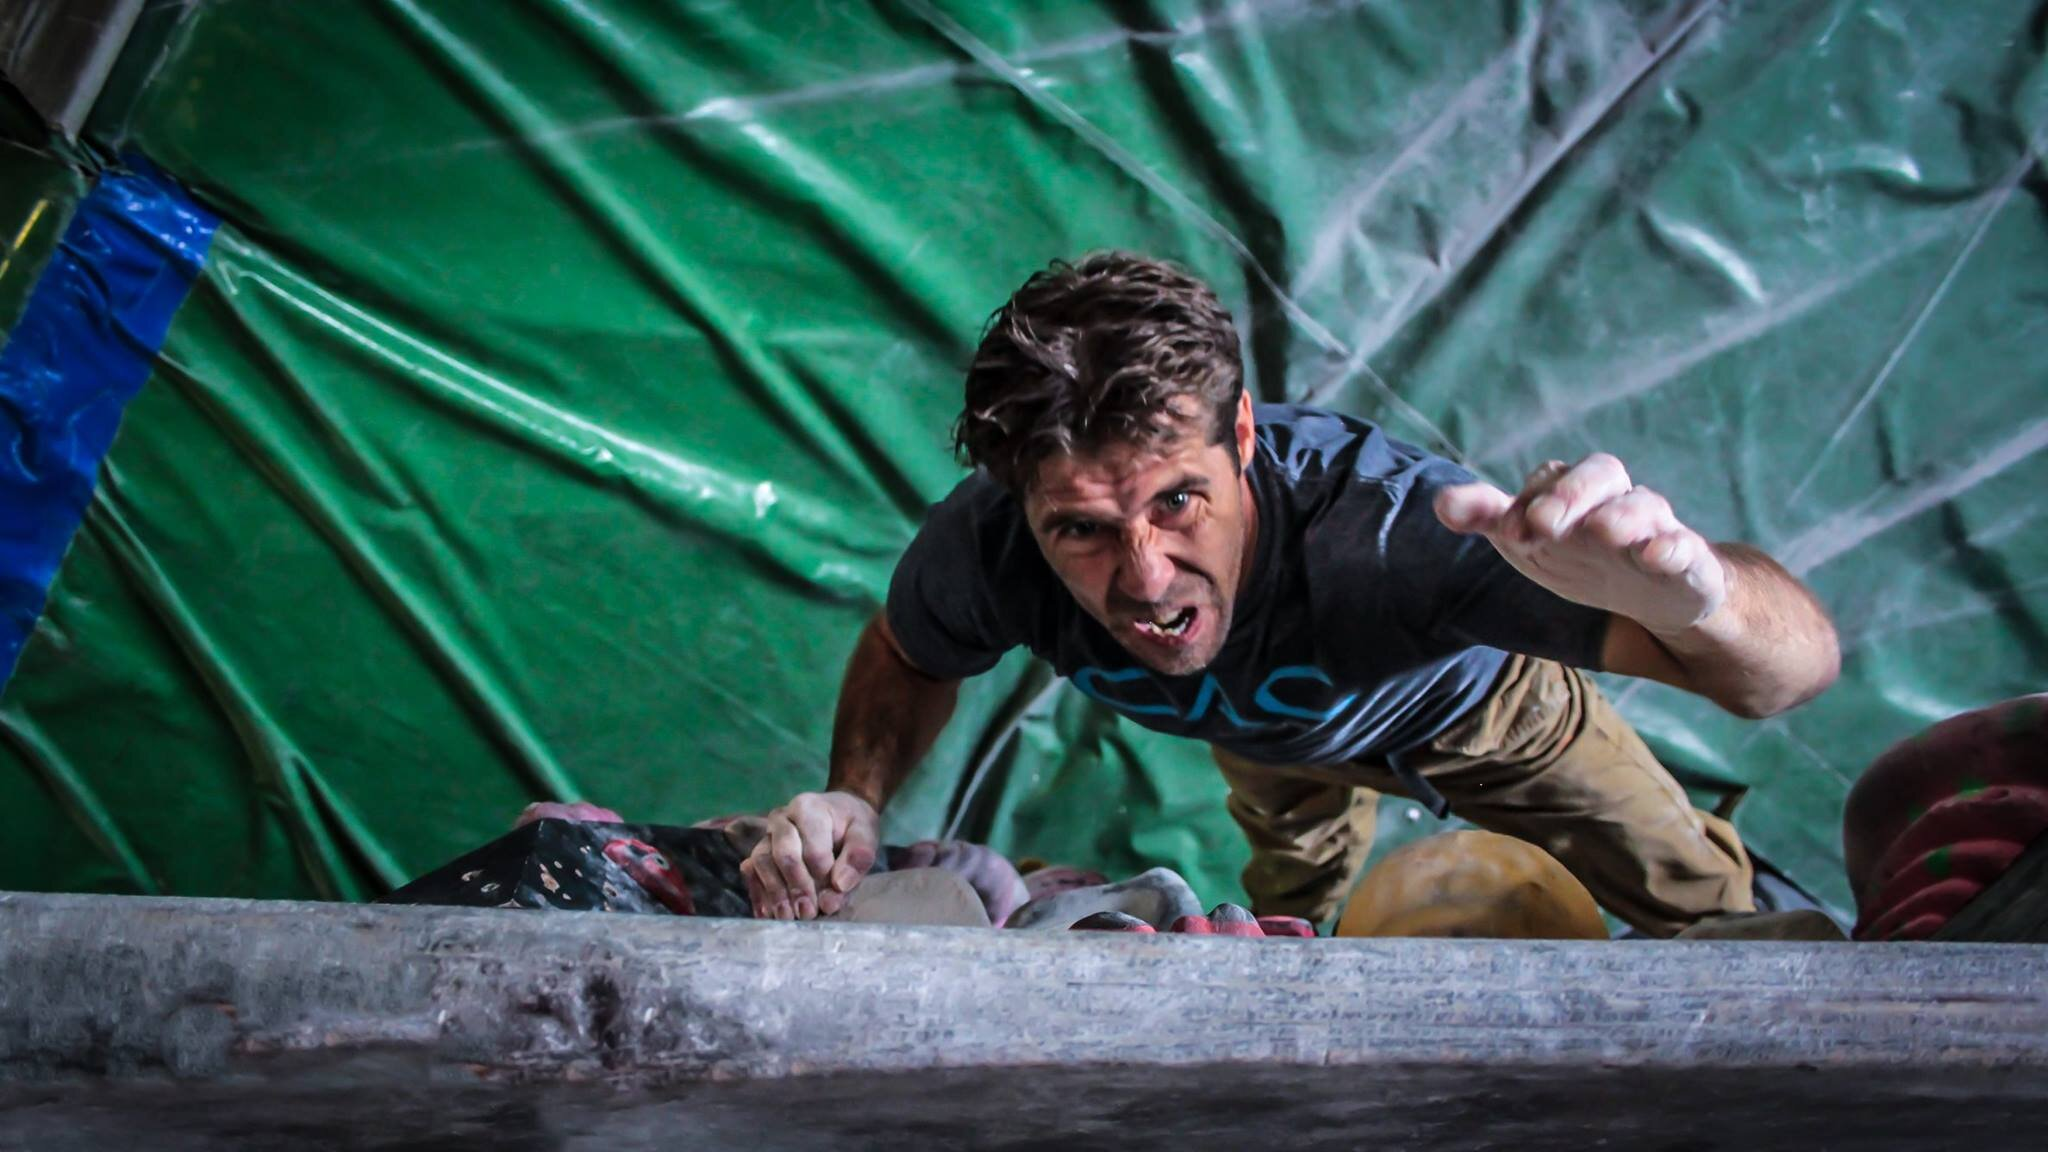 Need some Coaching? - Grab yourself a true bargain with our Coaching Bundle! Four hours of tailored coaching with our NGB qualified Coaches + Unlimited climbing for a Month from your requested starting date. For more info and booking click below.